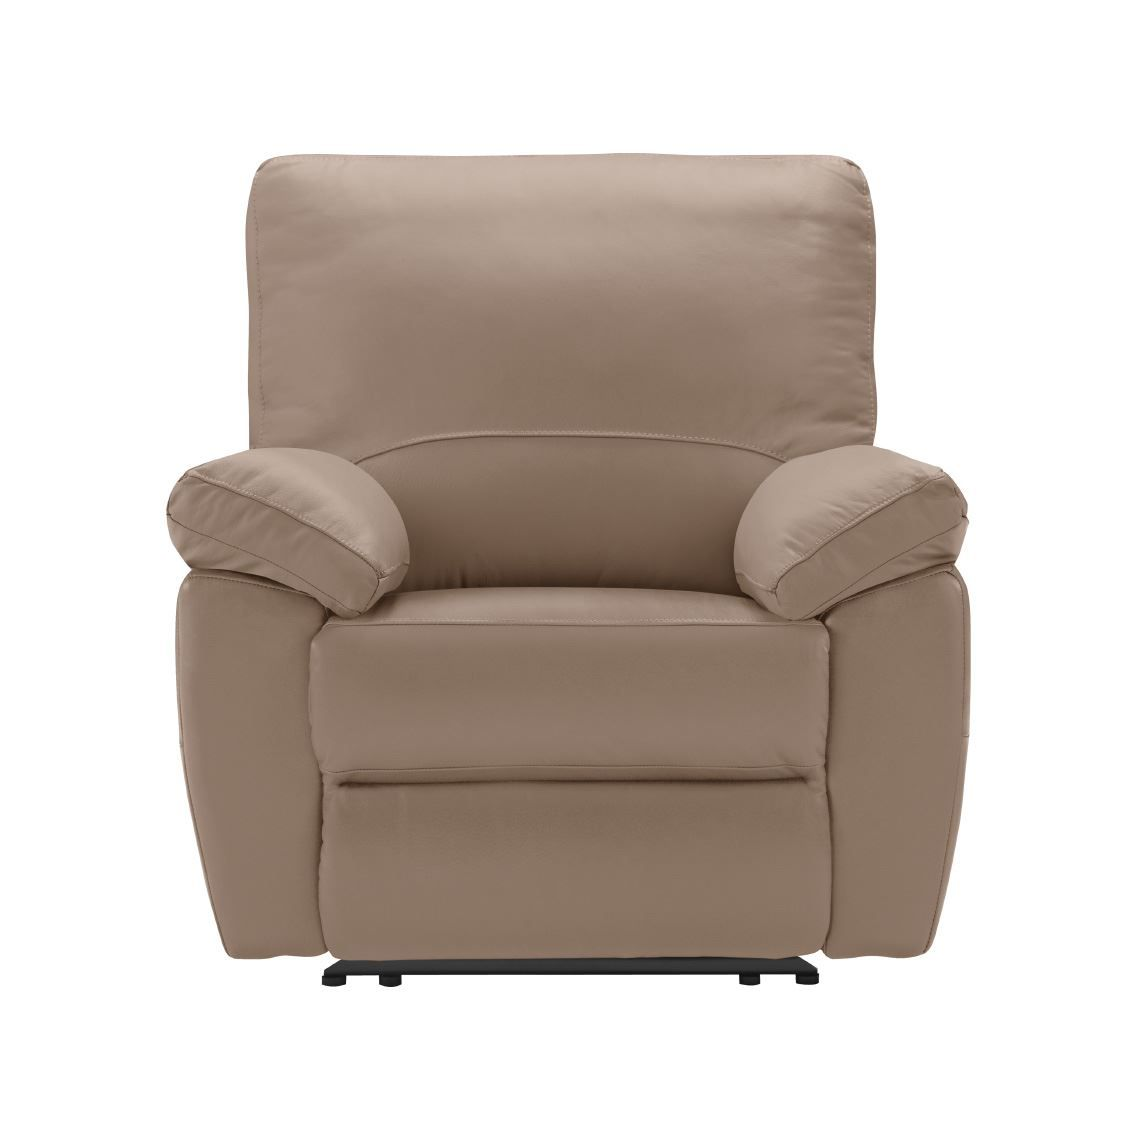 Lucas Recliner Size W 102cm X D 100cm X H 101cm In Pebble